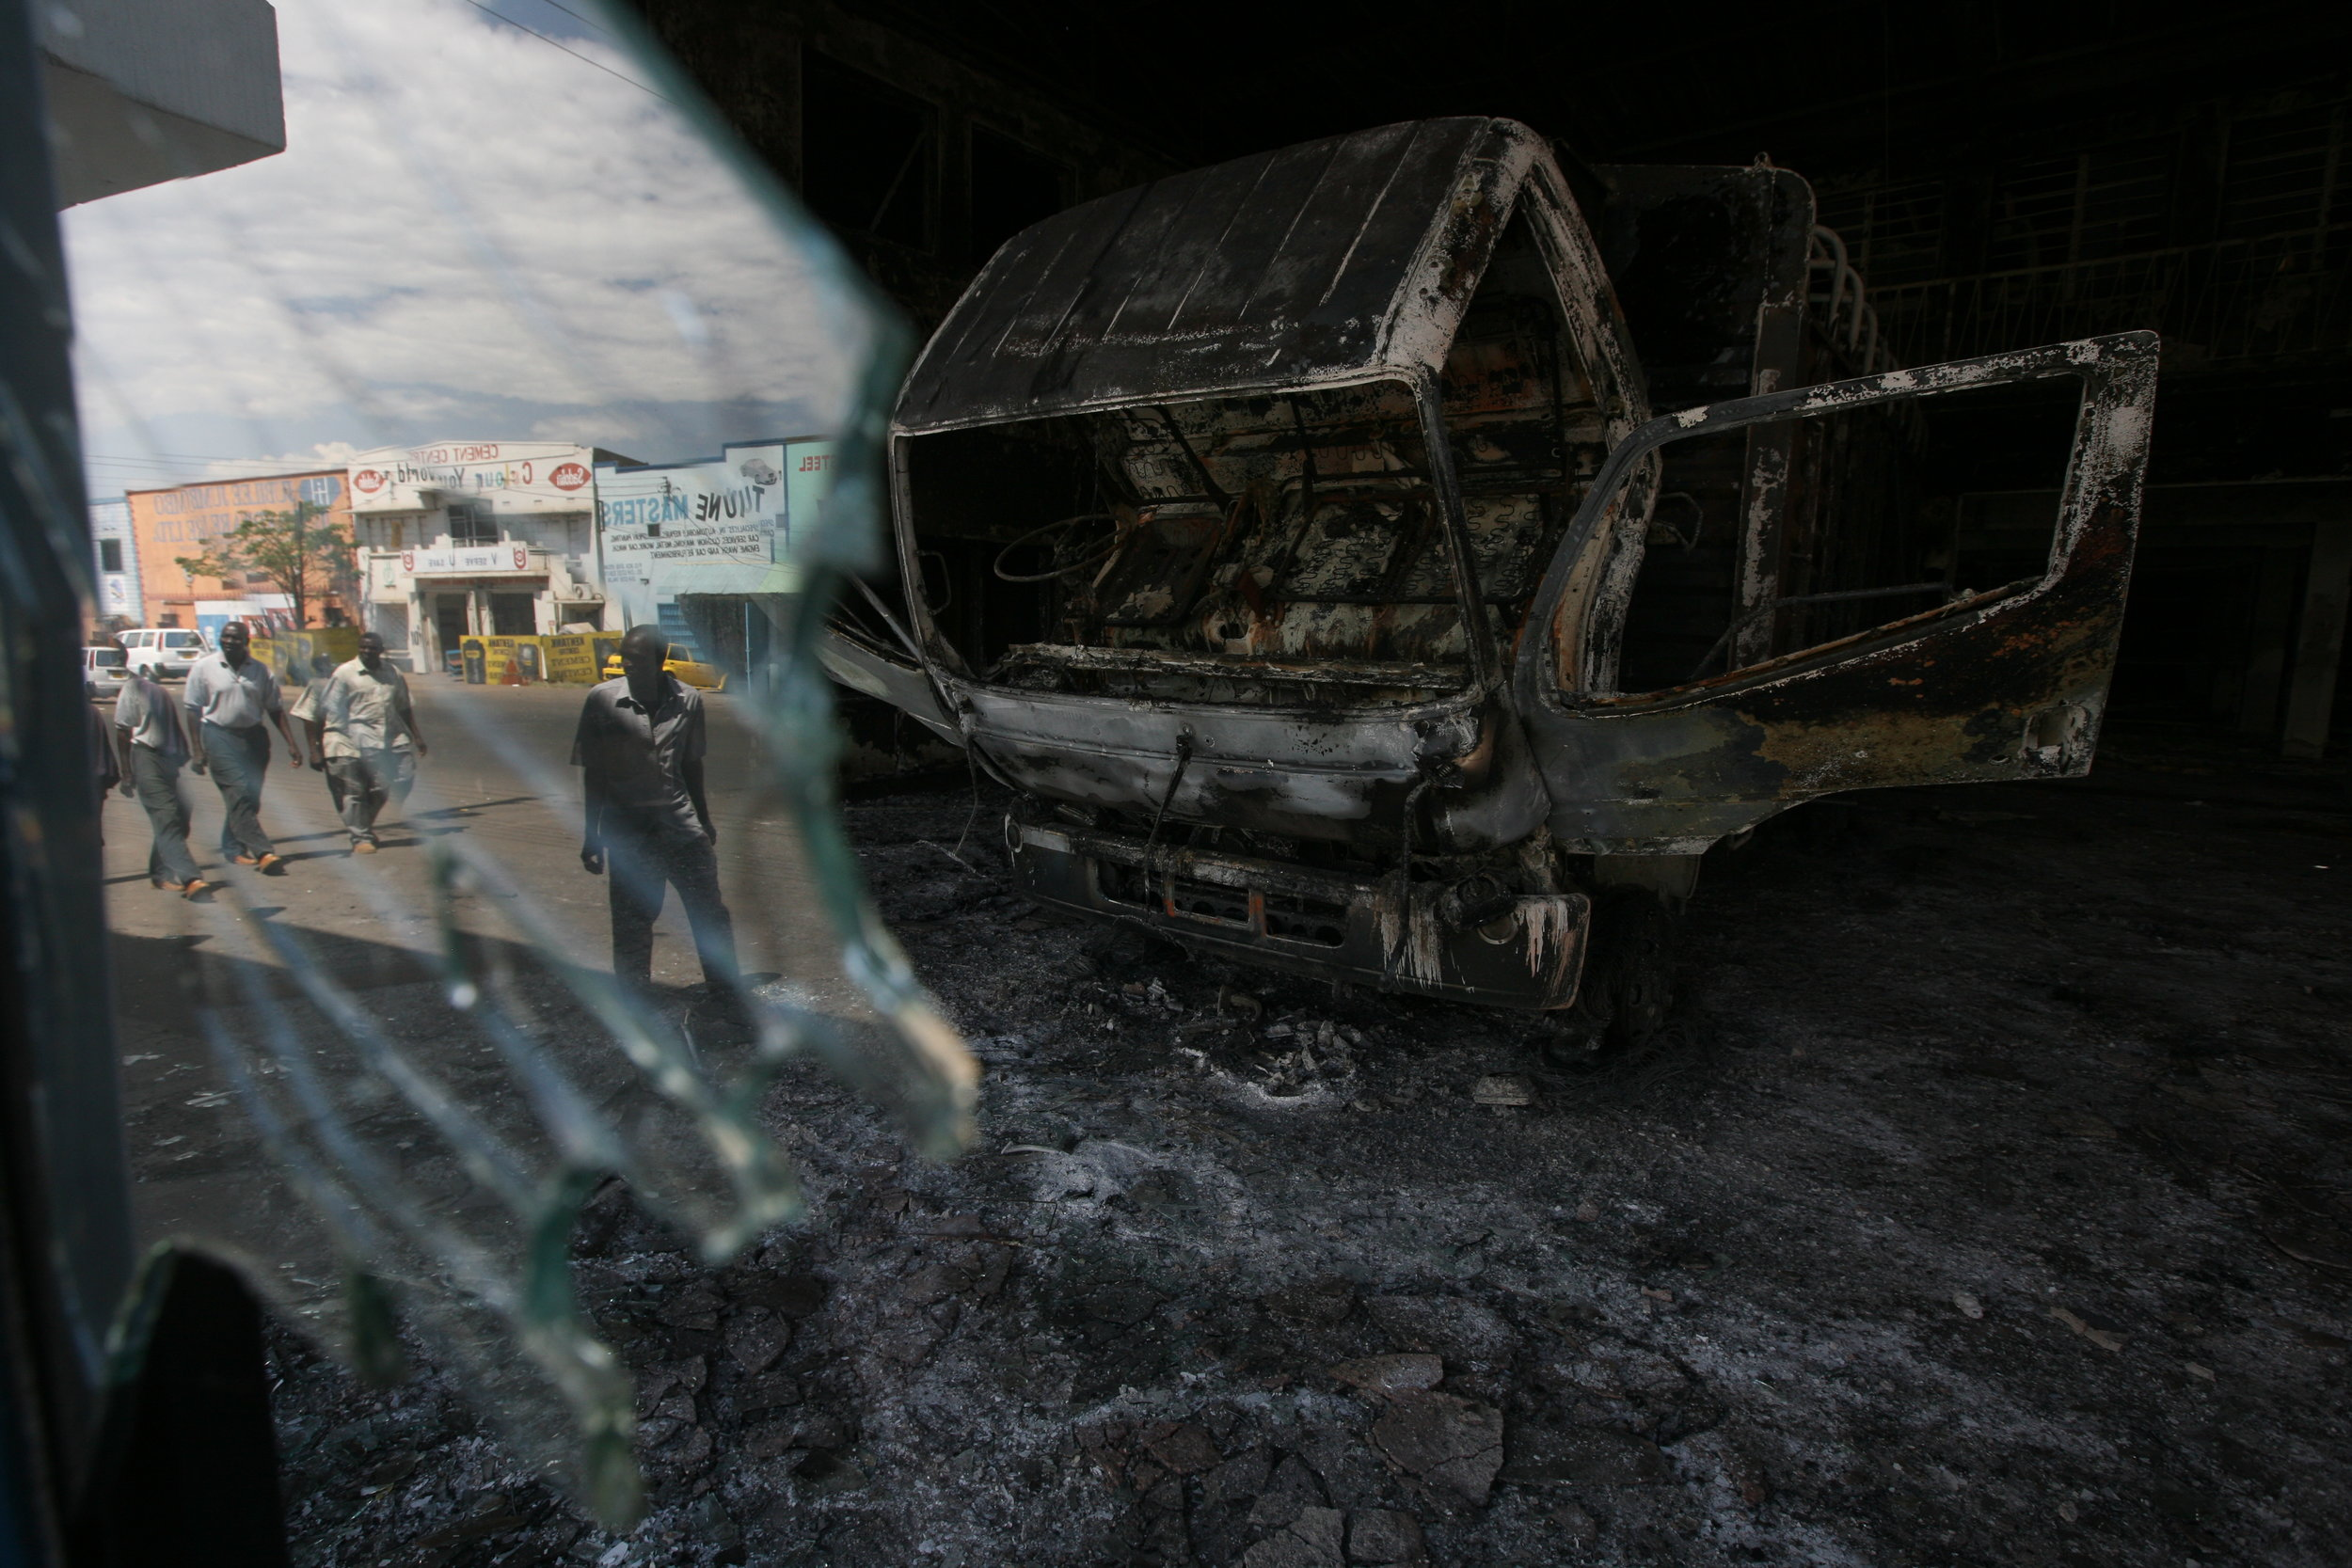 Residents of Kisumu, Kenya's third largest city, stood outside a ransacked car dealership following the wave of looting and rioting that has engulfed the country as it begins to get back to normal after a week of post-election violence that has claimed more than 300 lives nationwide. Few places have been so thoroughly gutted by the turbulence as here.